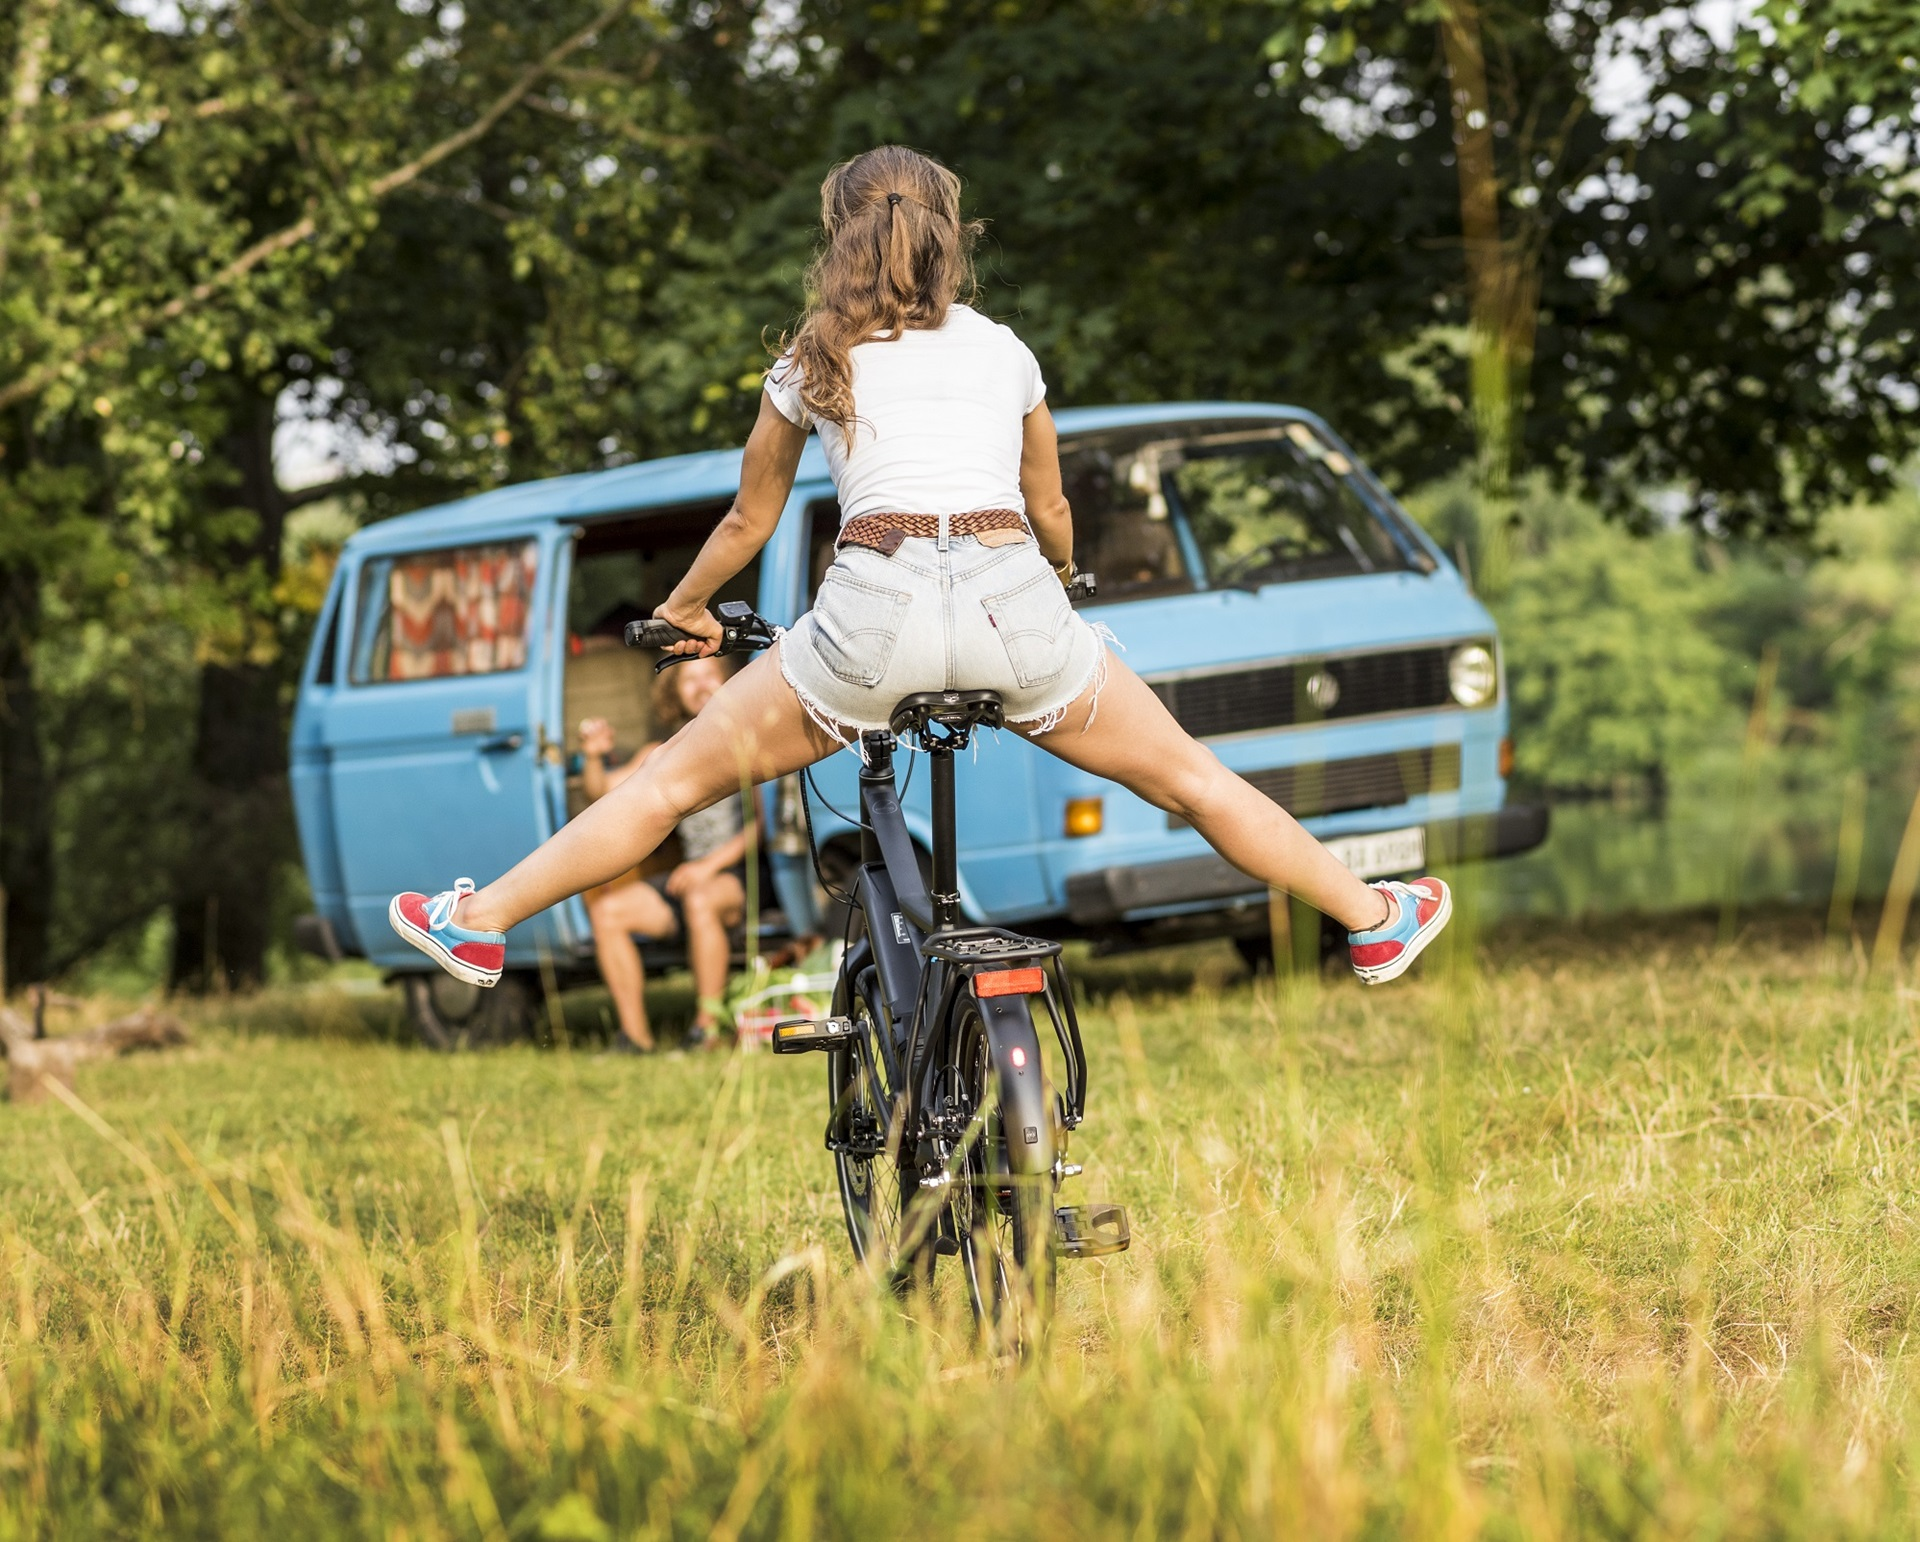 girl rides winora bike in grass field